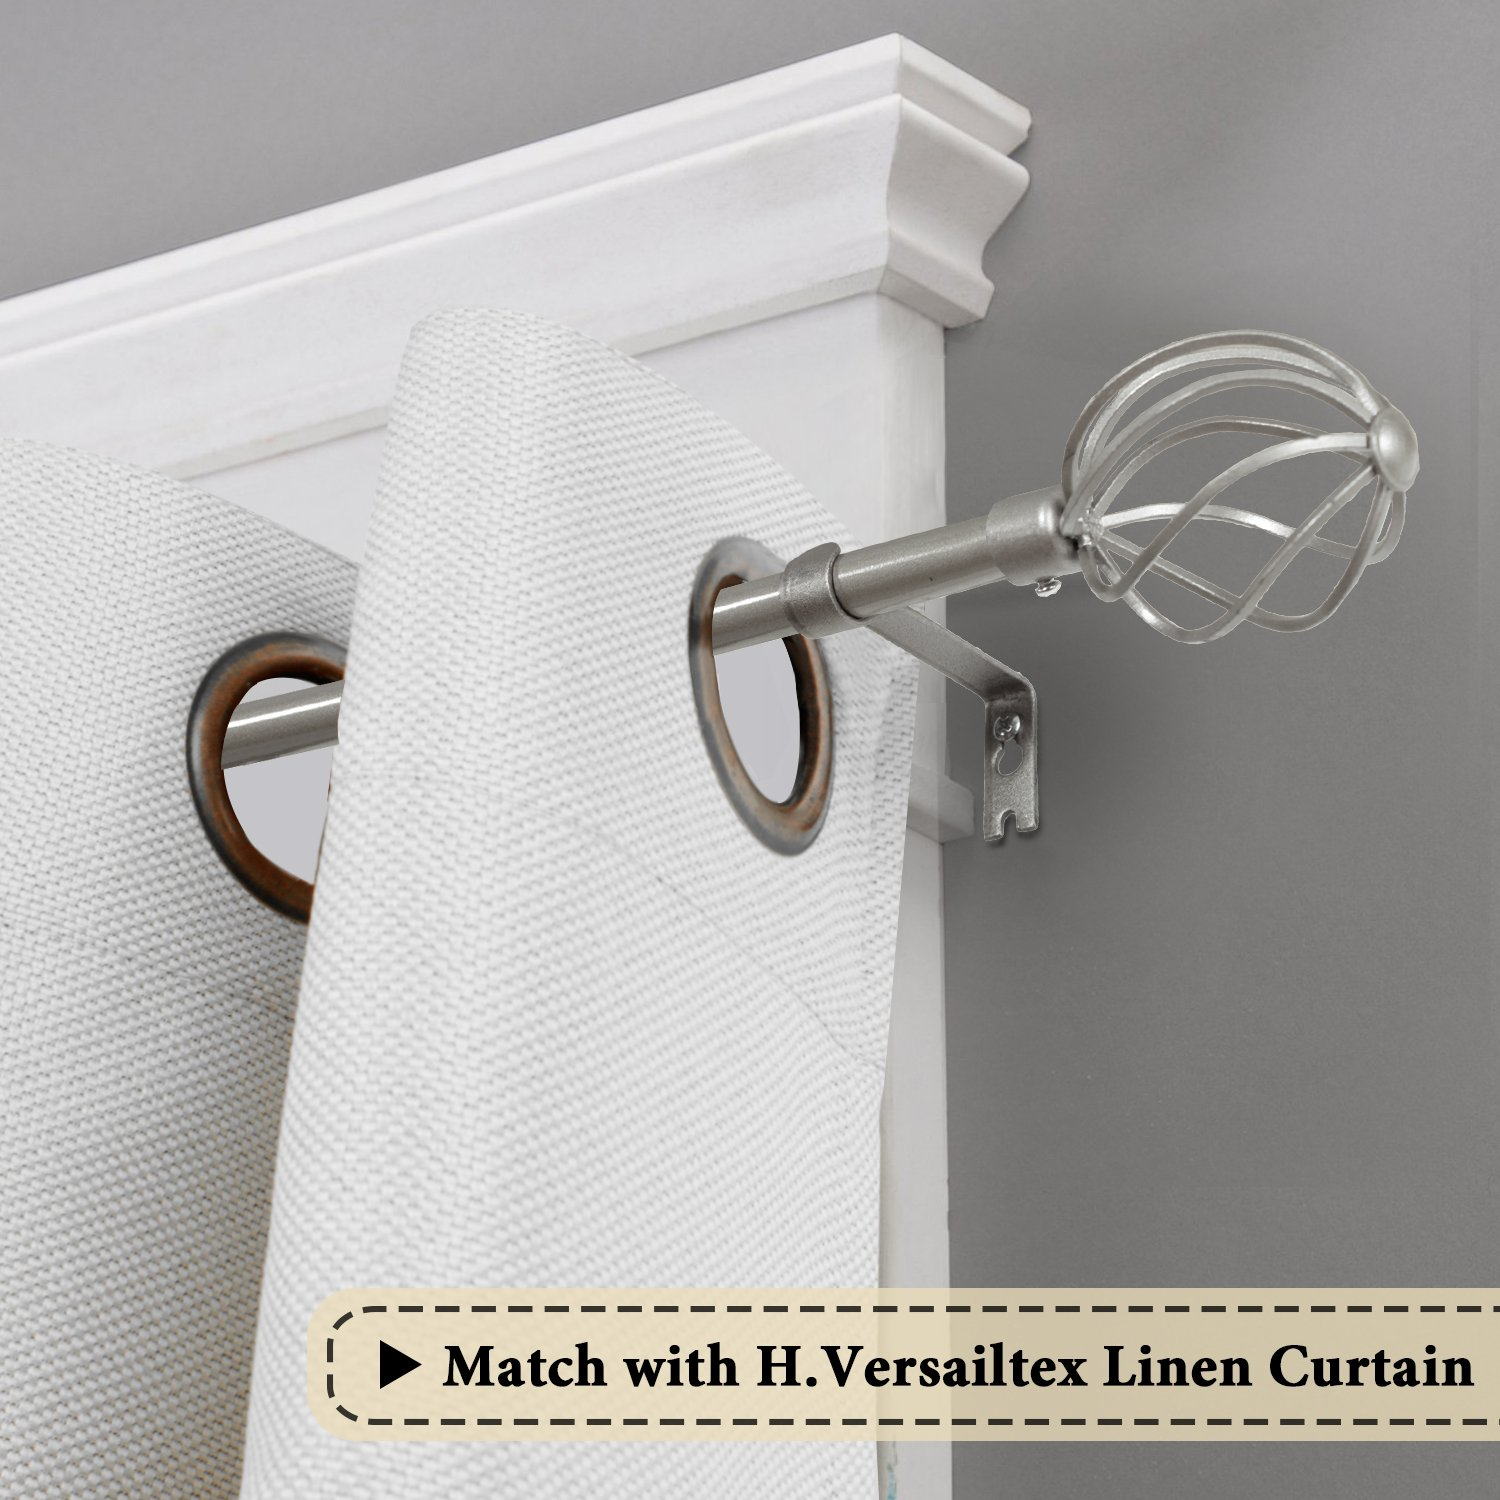 H.VERSAILTEX Window Curtain Rod Set, Adjusts Rod Length from 48 to 84-Inch, 3/4 - Inch Diameter, Twisted Sphere Finials, Nickel